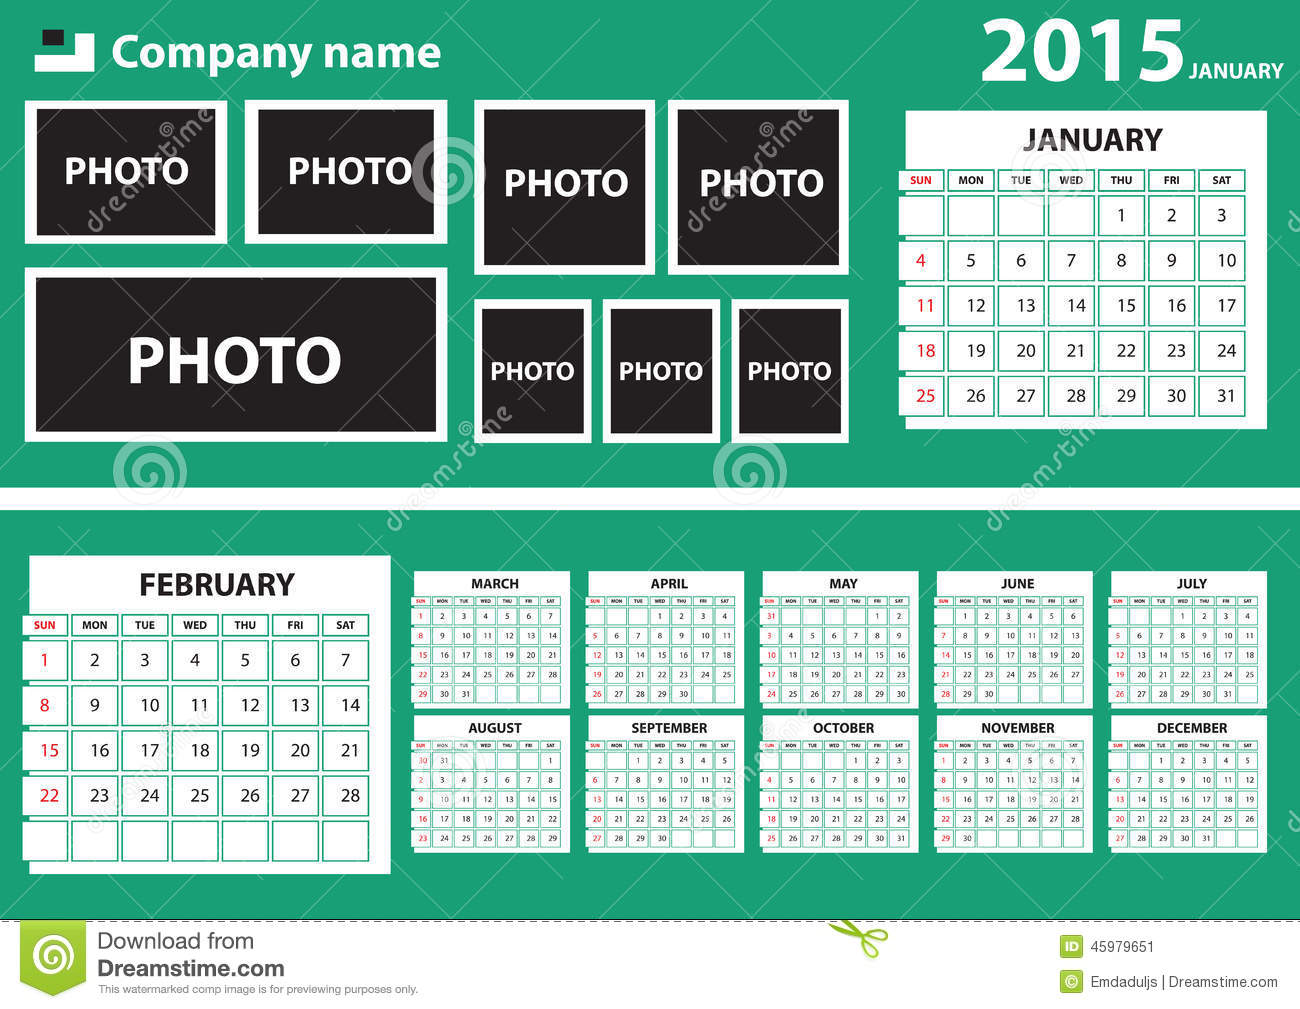 Animated 2015 Calendar New Calendar Template Site